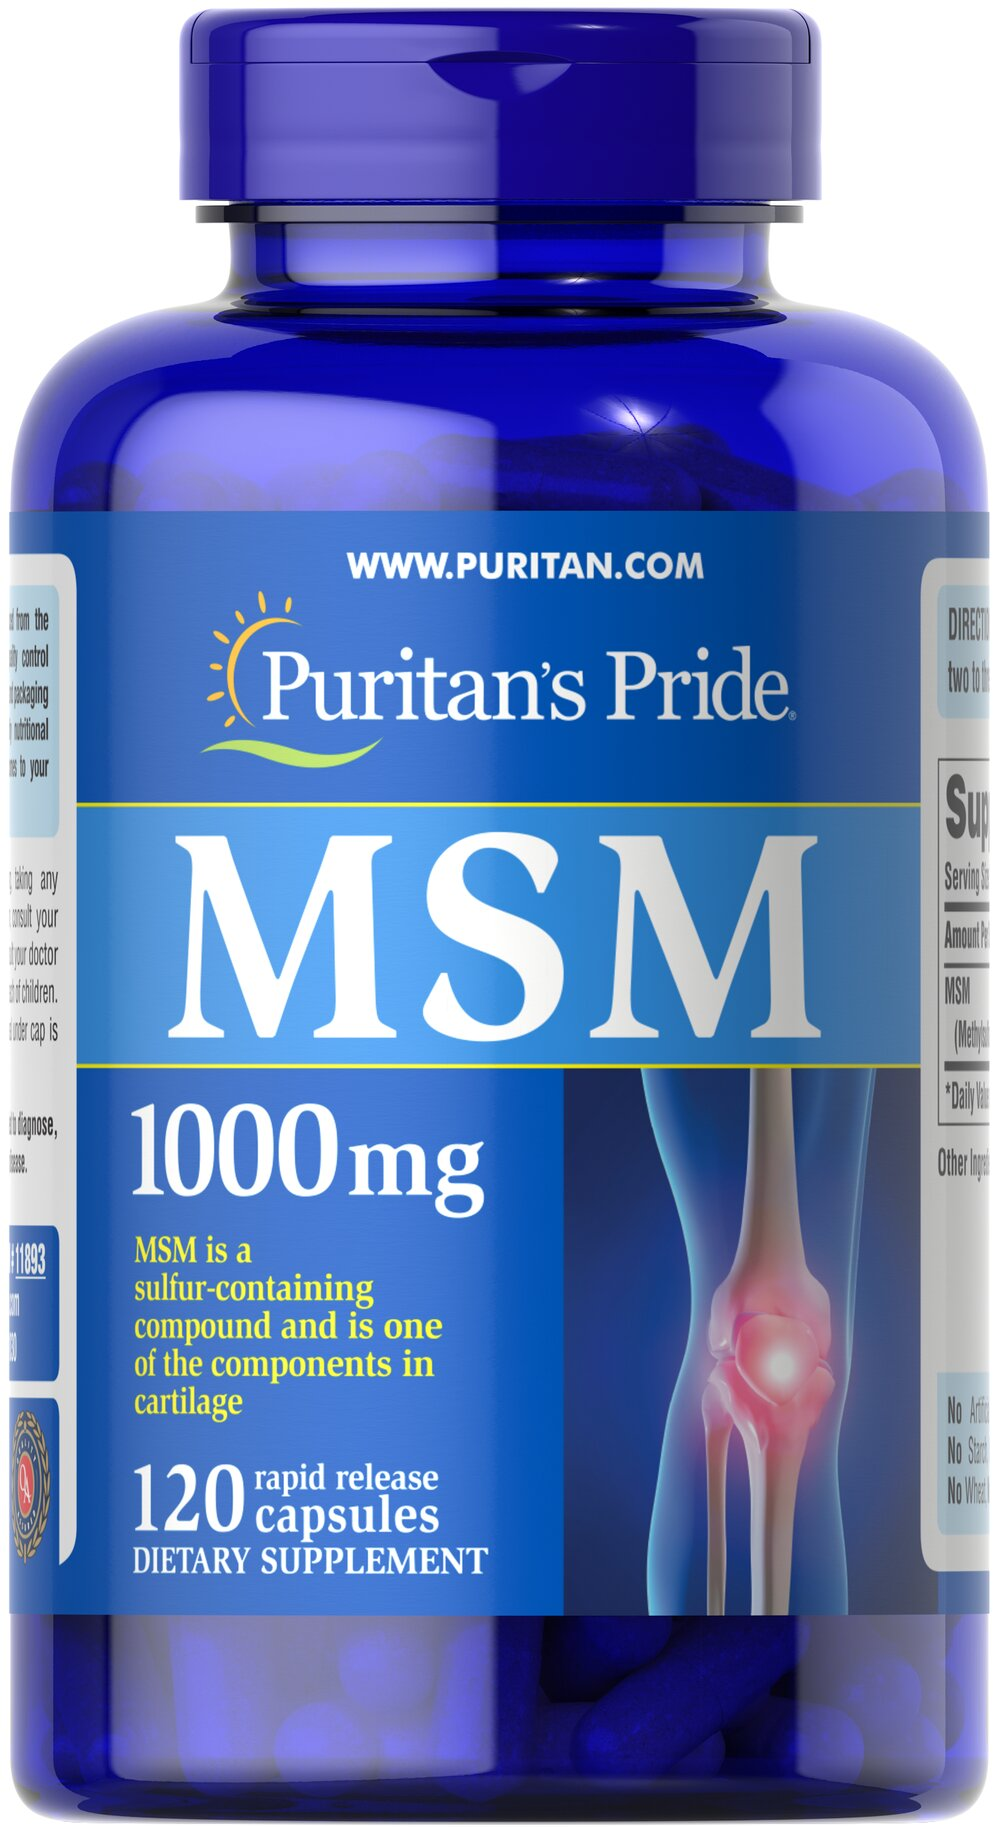 MSM 1000 mg <p><strong>Methylsulfonylmethane (MSM)</strong> is a natural source of sulfur, one of the major building blocks of glycosaminoglycans.** Glycosaminoglycans are key structural components in cartilage and play an important role in the maintenance of joint cartilage. ** </p> 120 Capsules 1000 mg $14.99